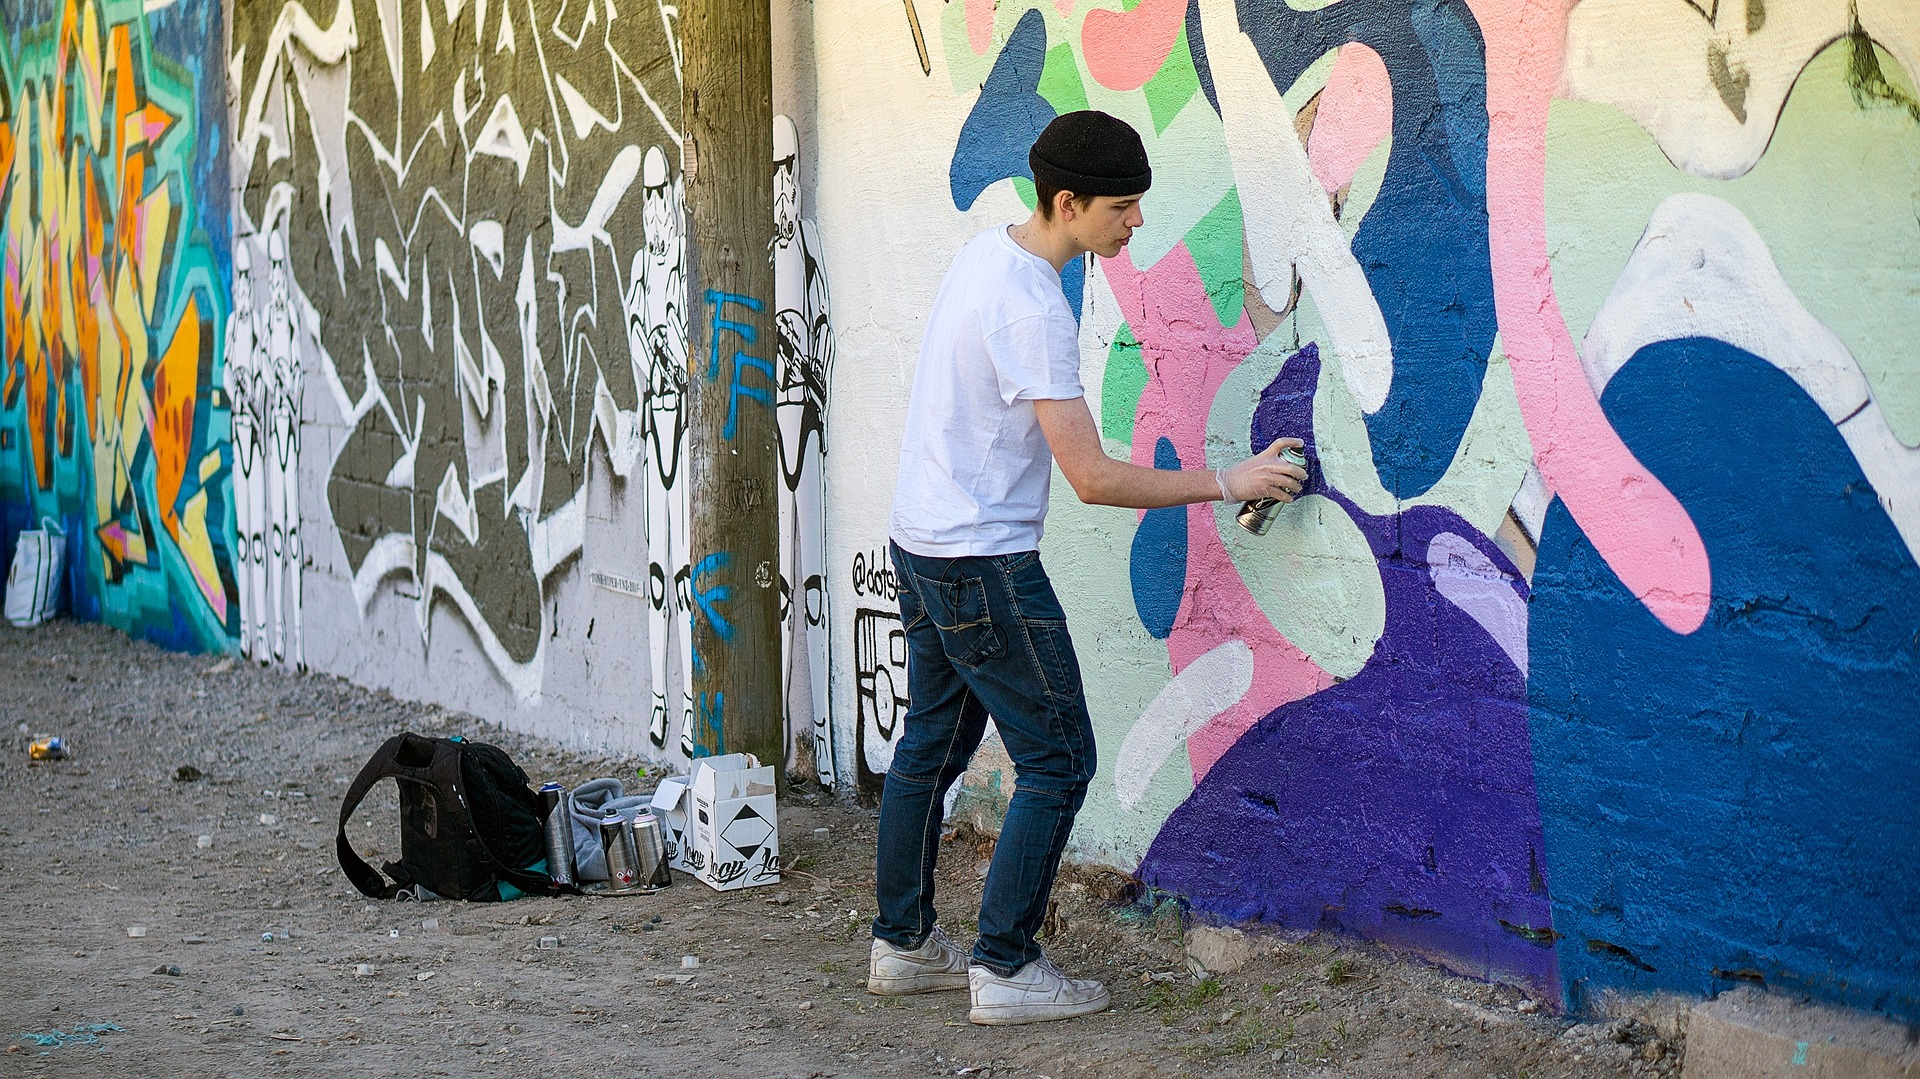 graffiti-painter-1726153_1920.jpg